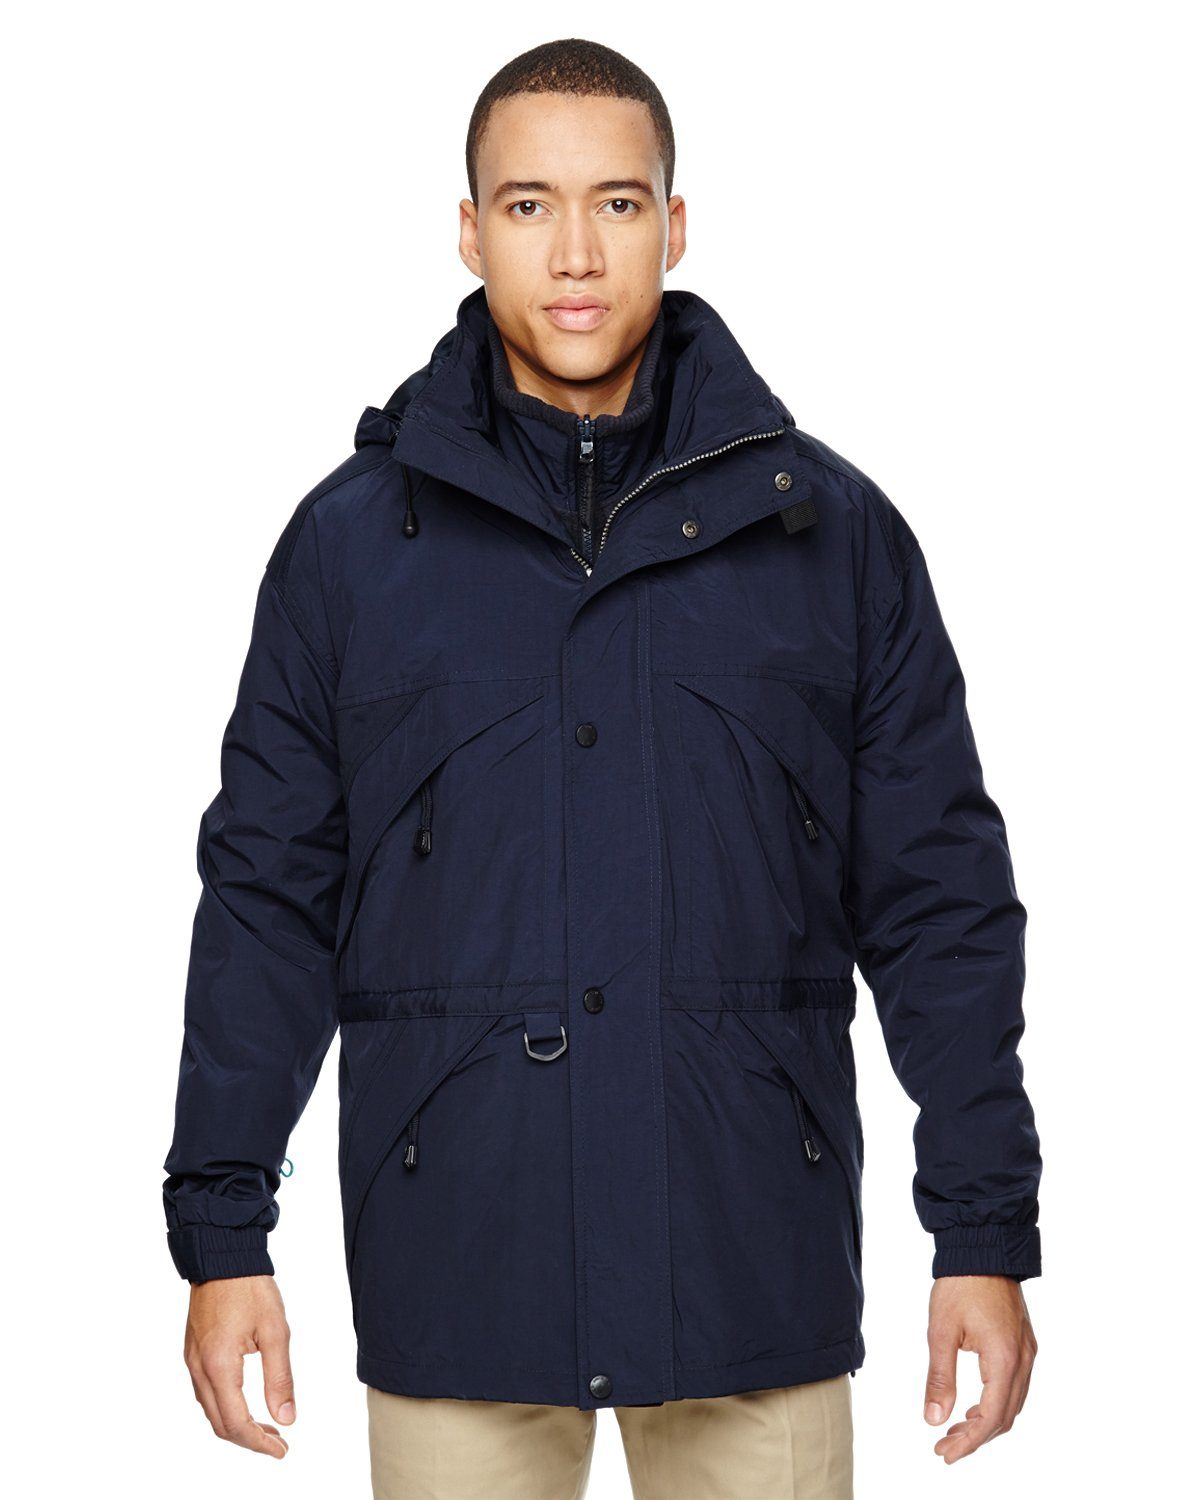 Ash City Mens 3-in-1 Parka with Dobby Trim (X-Small, Midnight Navy)